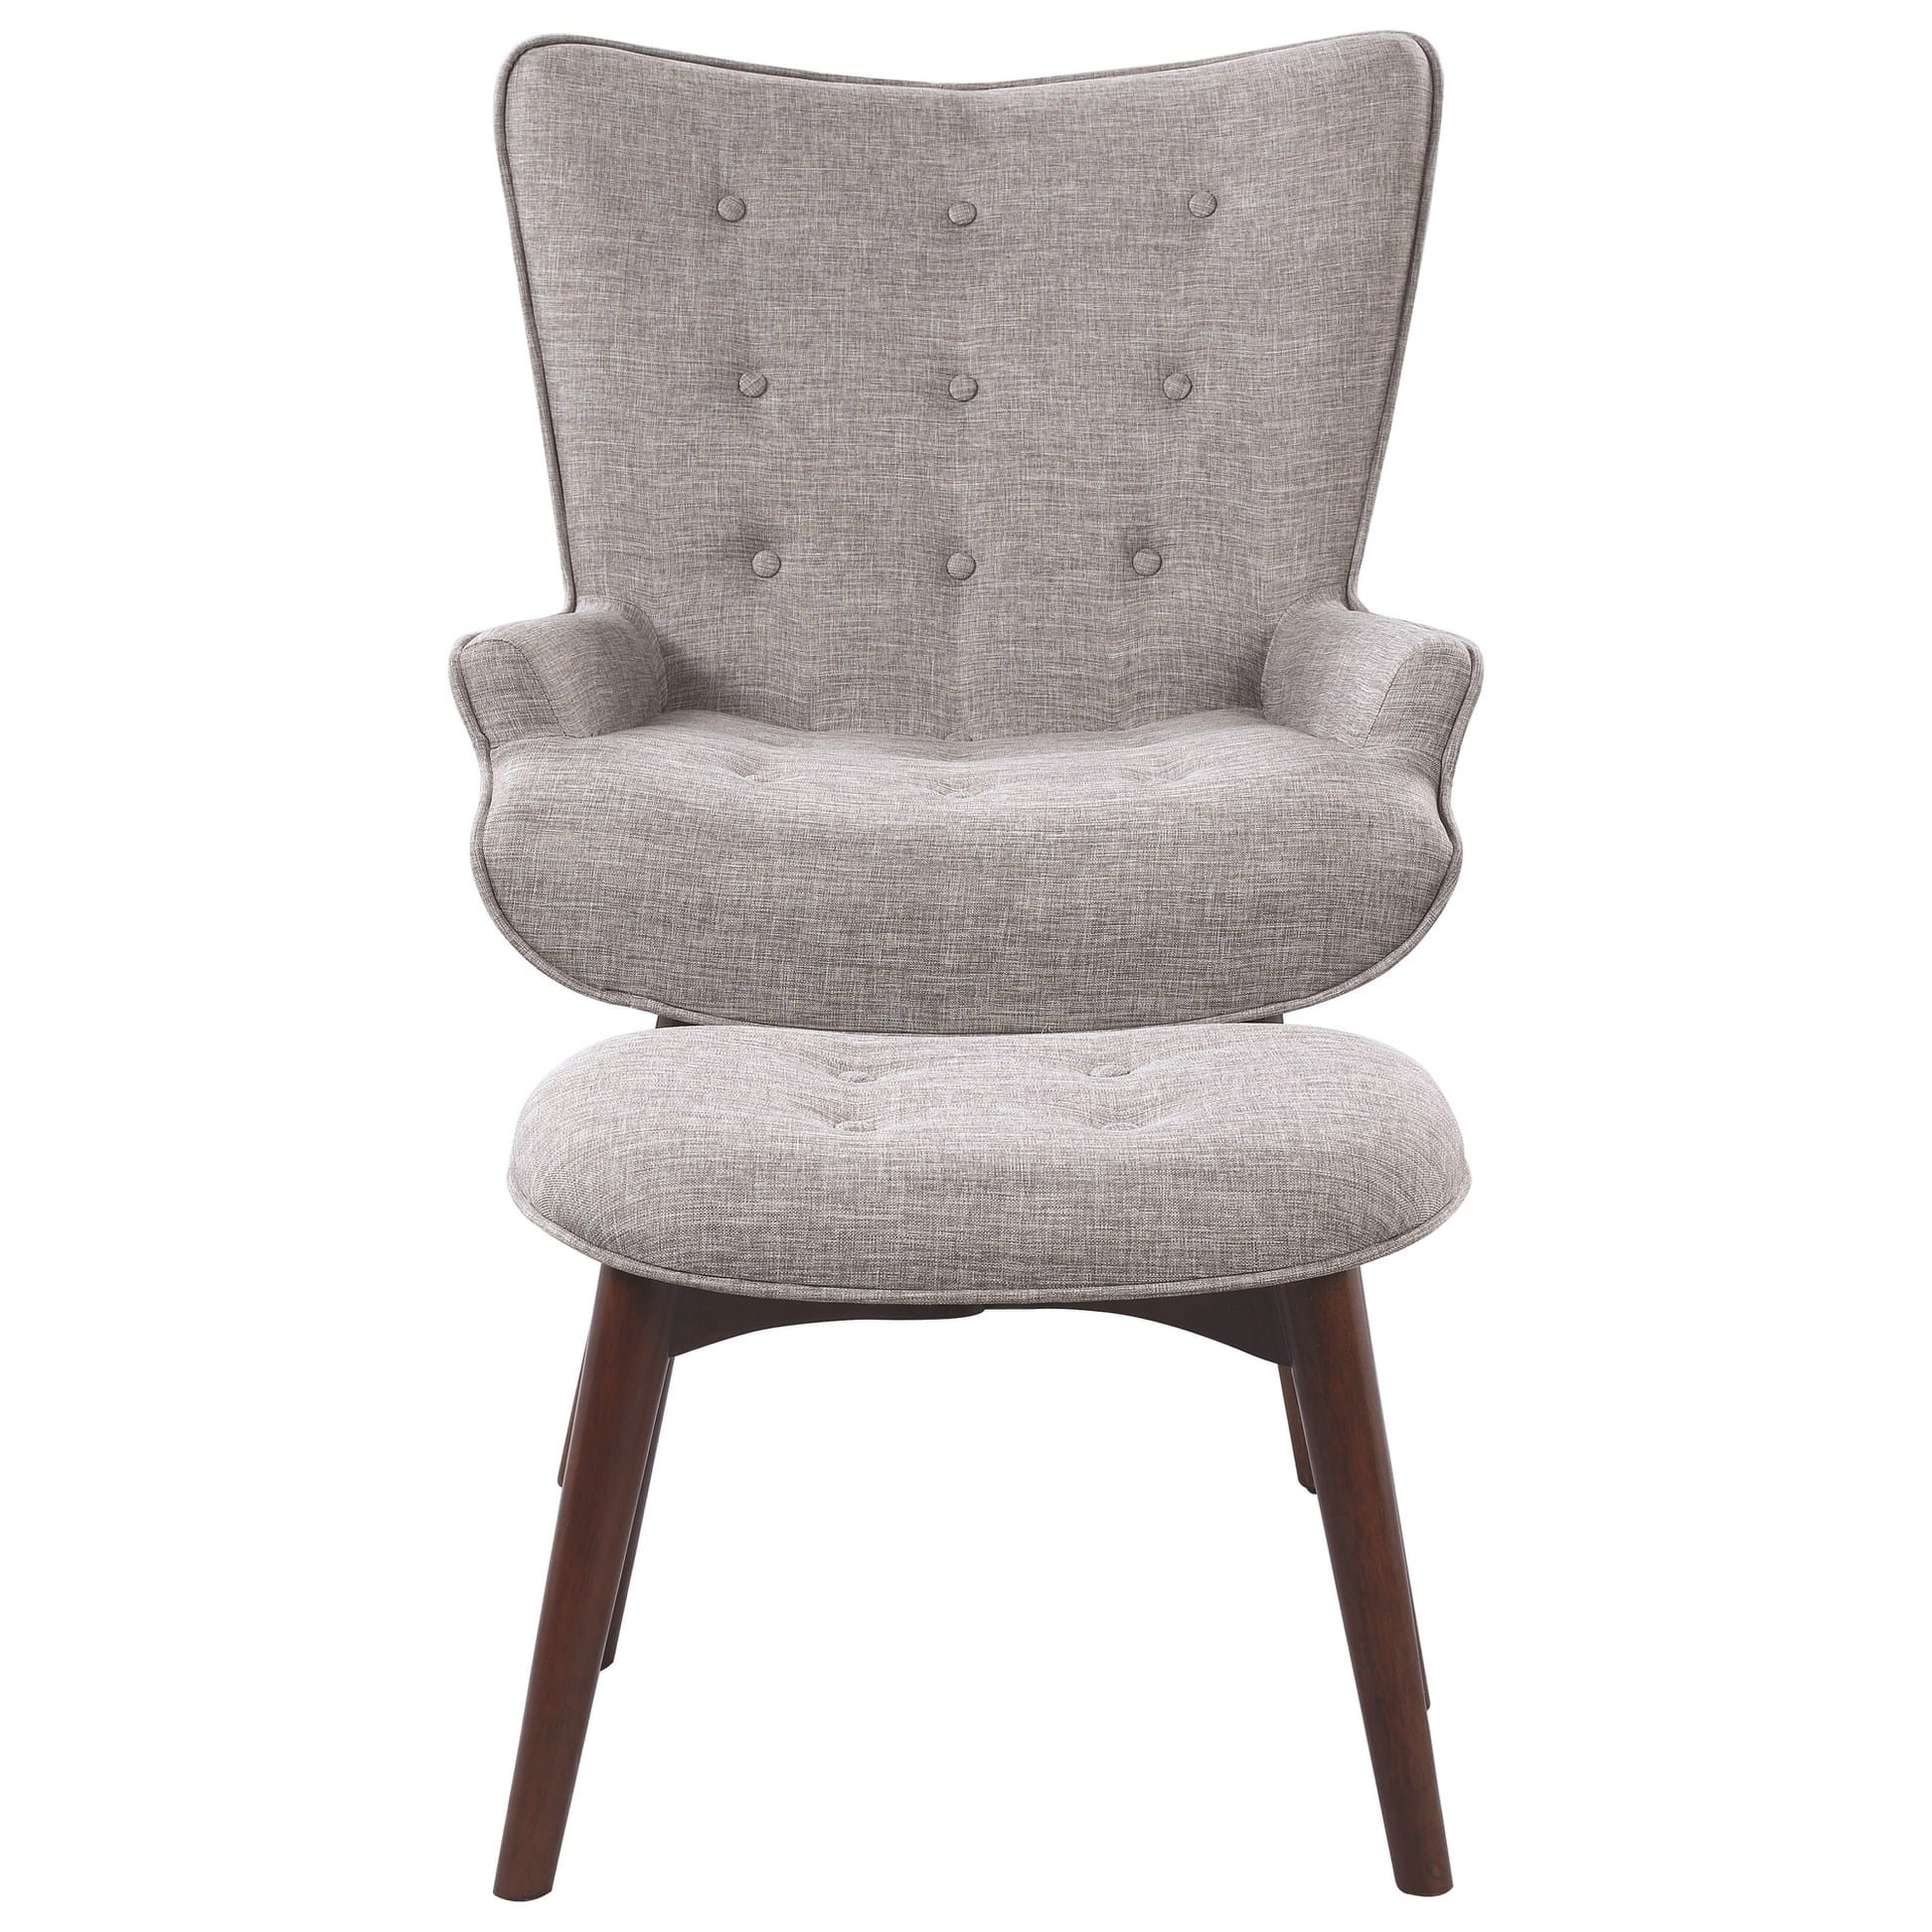 Light Gray Accent Chairs 903820 Light Gray Accent Chair With Ottoman By Scott Living